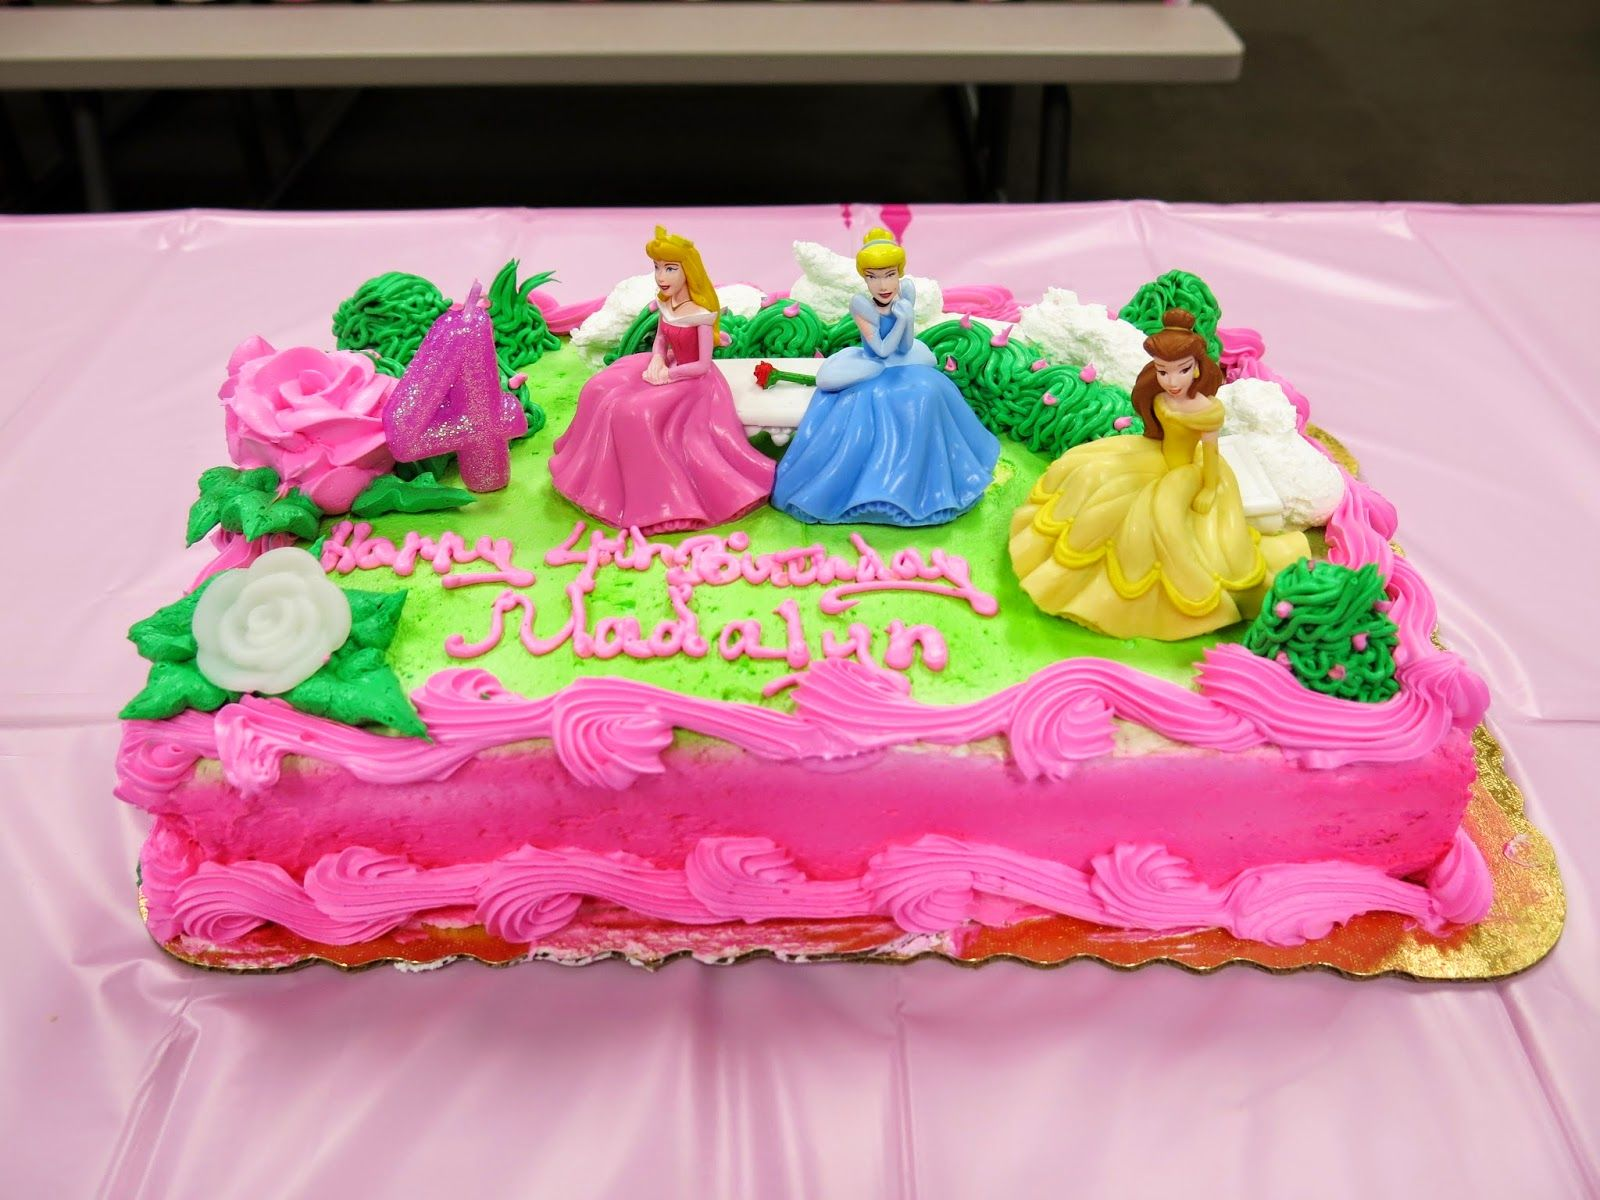 Disney Princess Birthday Cake From Bi Lo